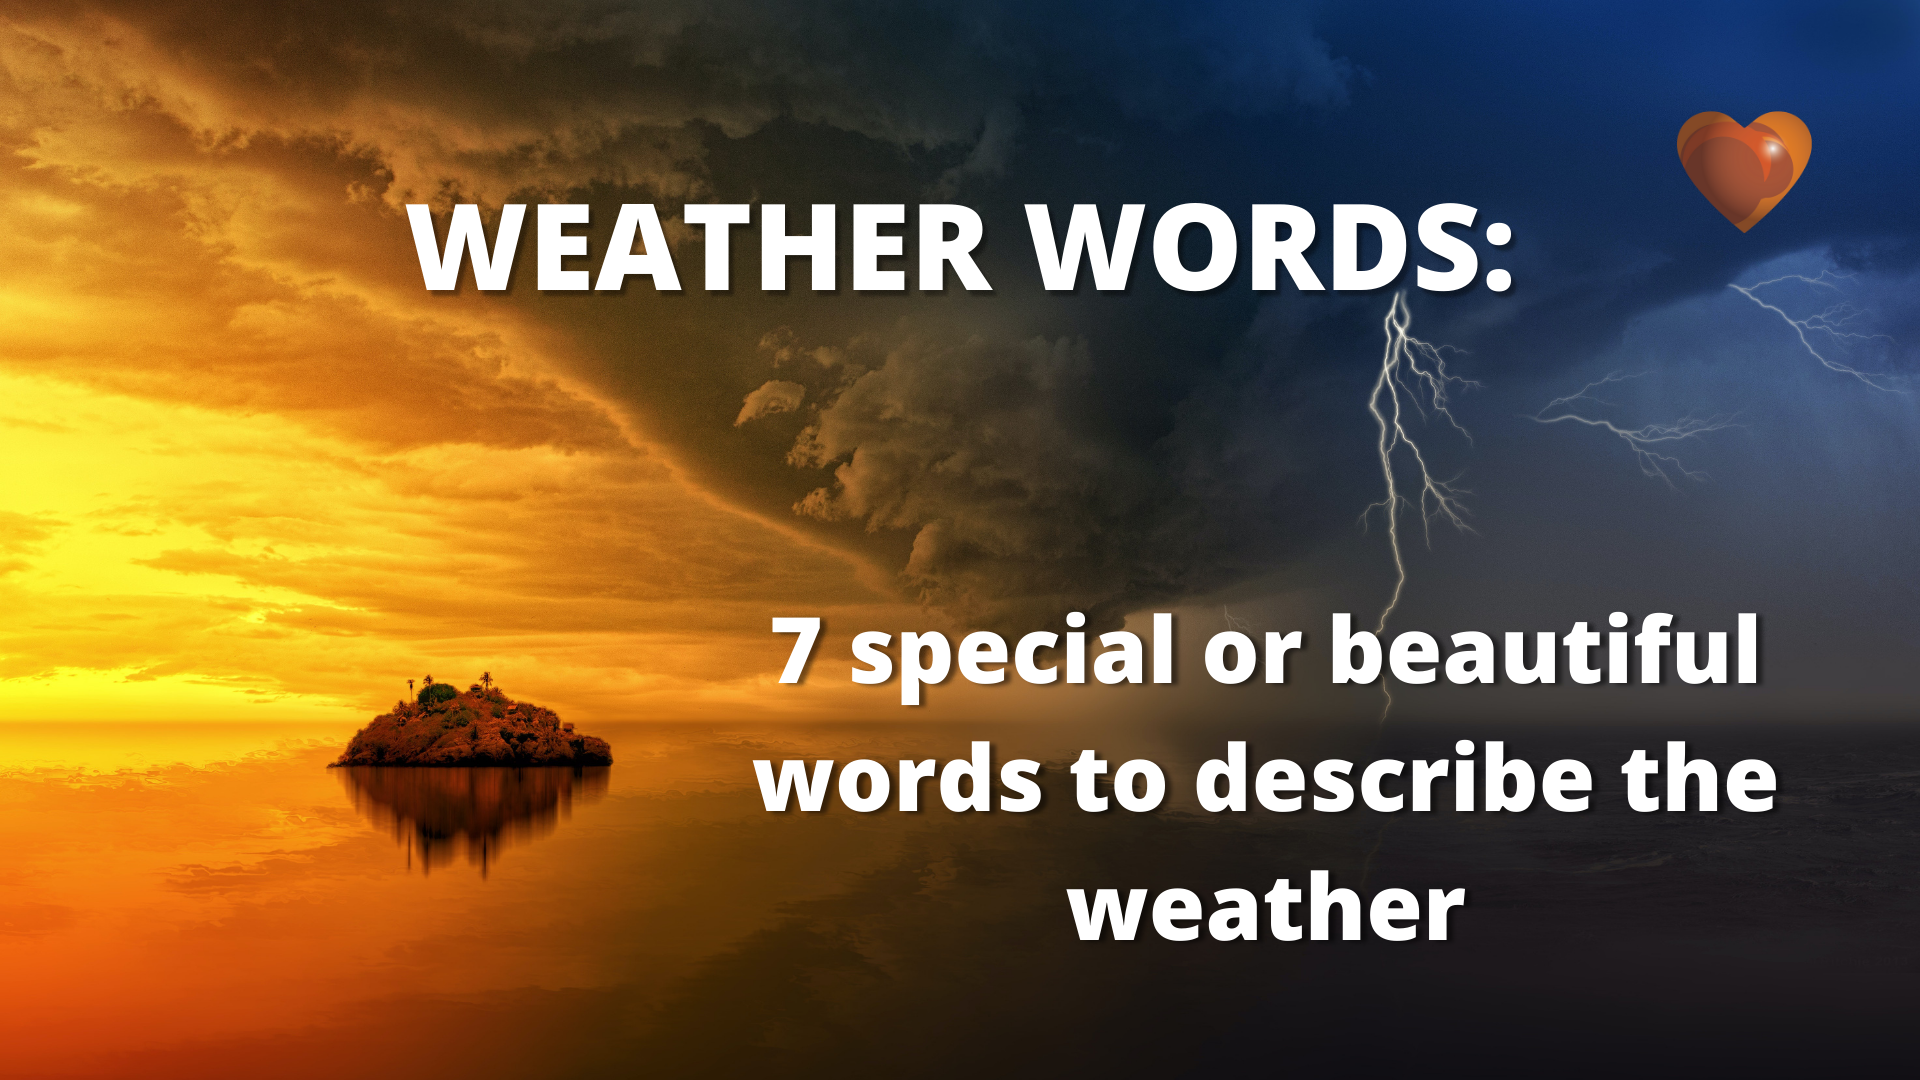 Weather words_ Seven special or beautiful words to describe the weather